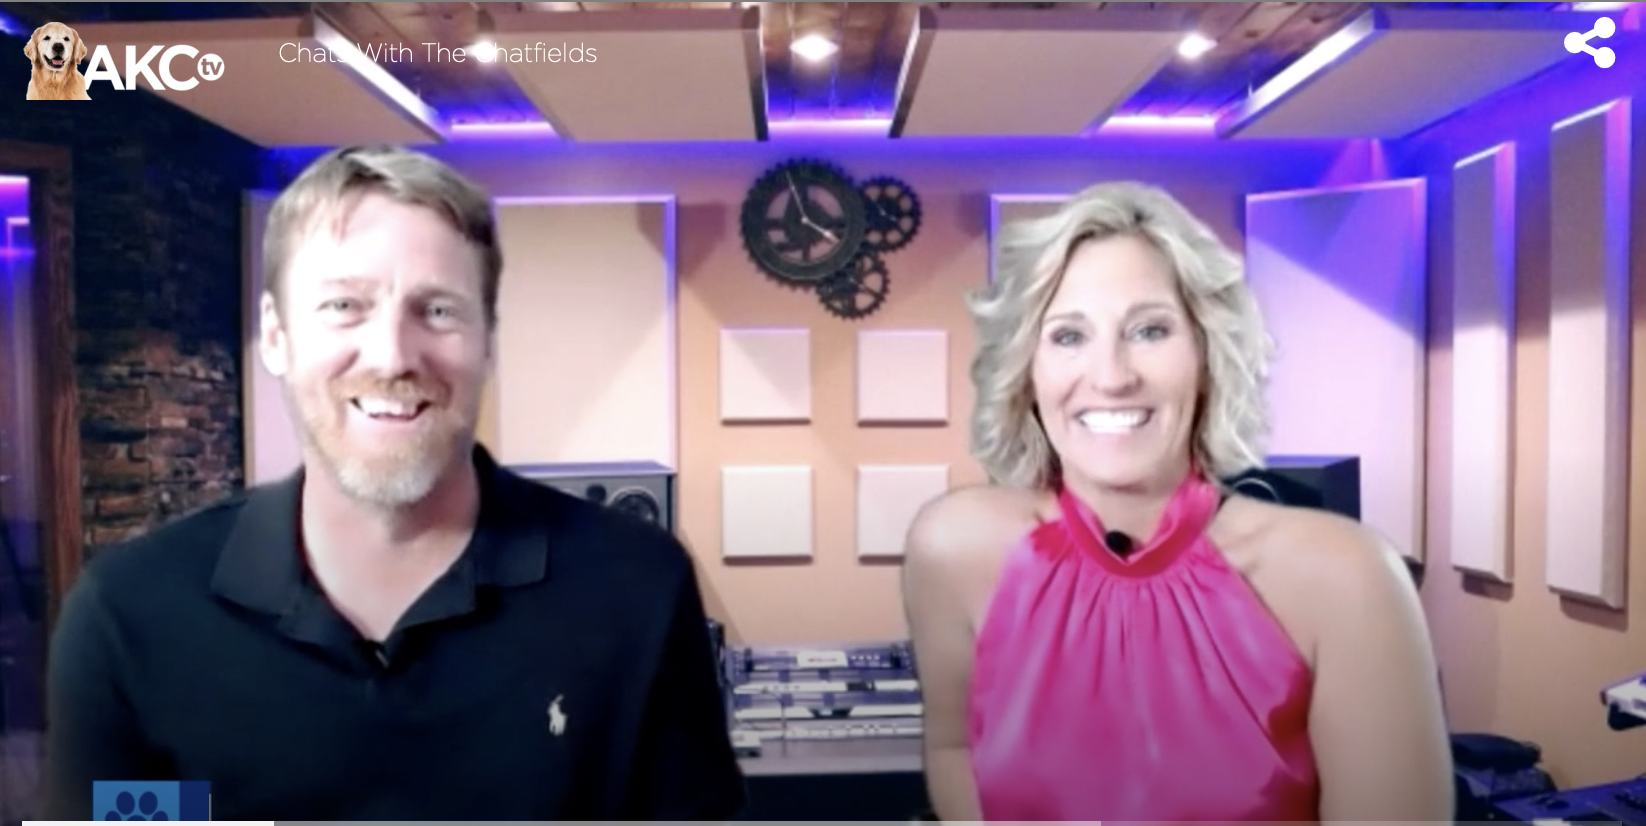 """AKC.TV interviews Dr. Jen and Dr. Jason about """"Chats with the Chatfields"""""""